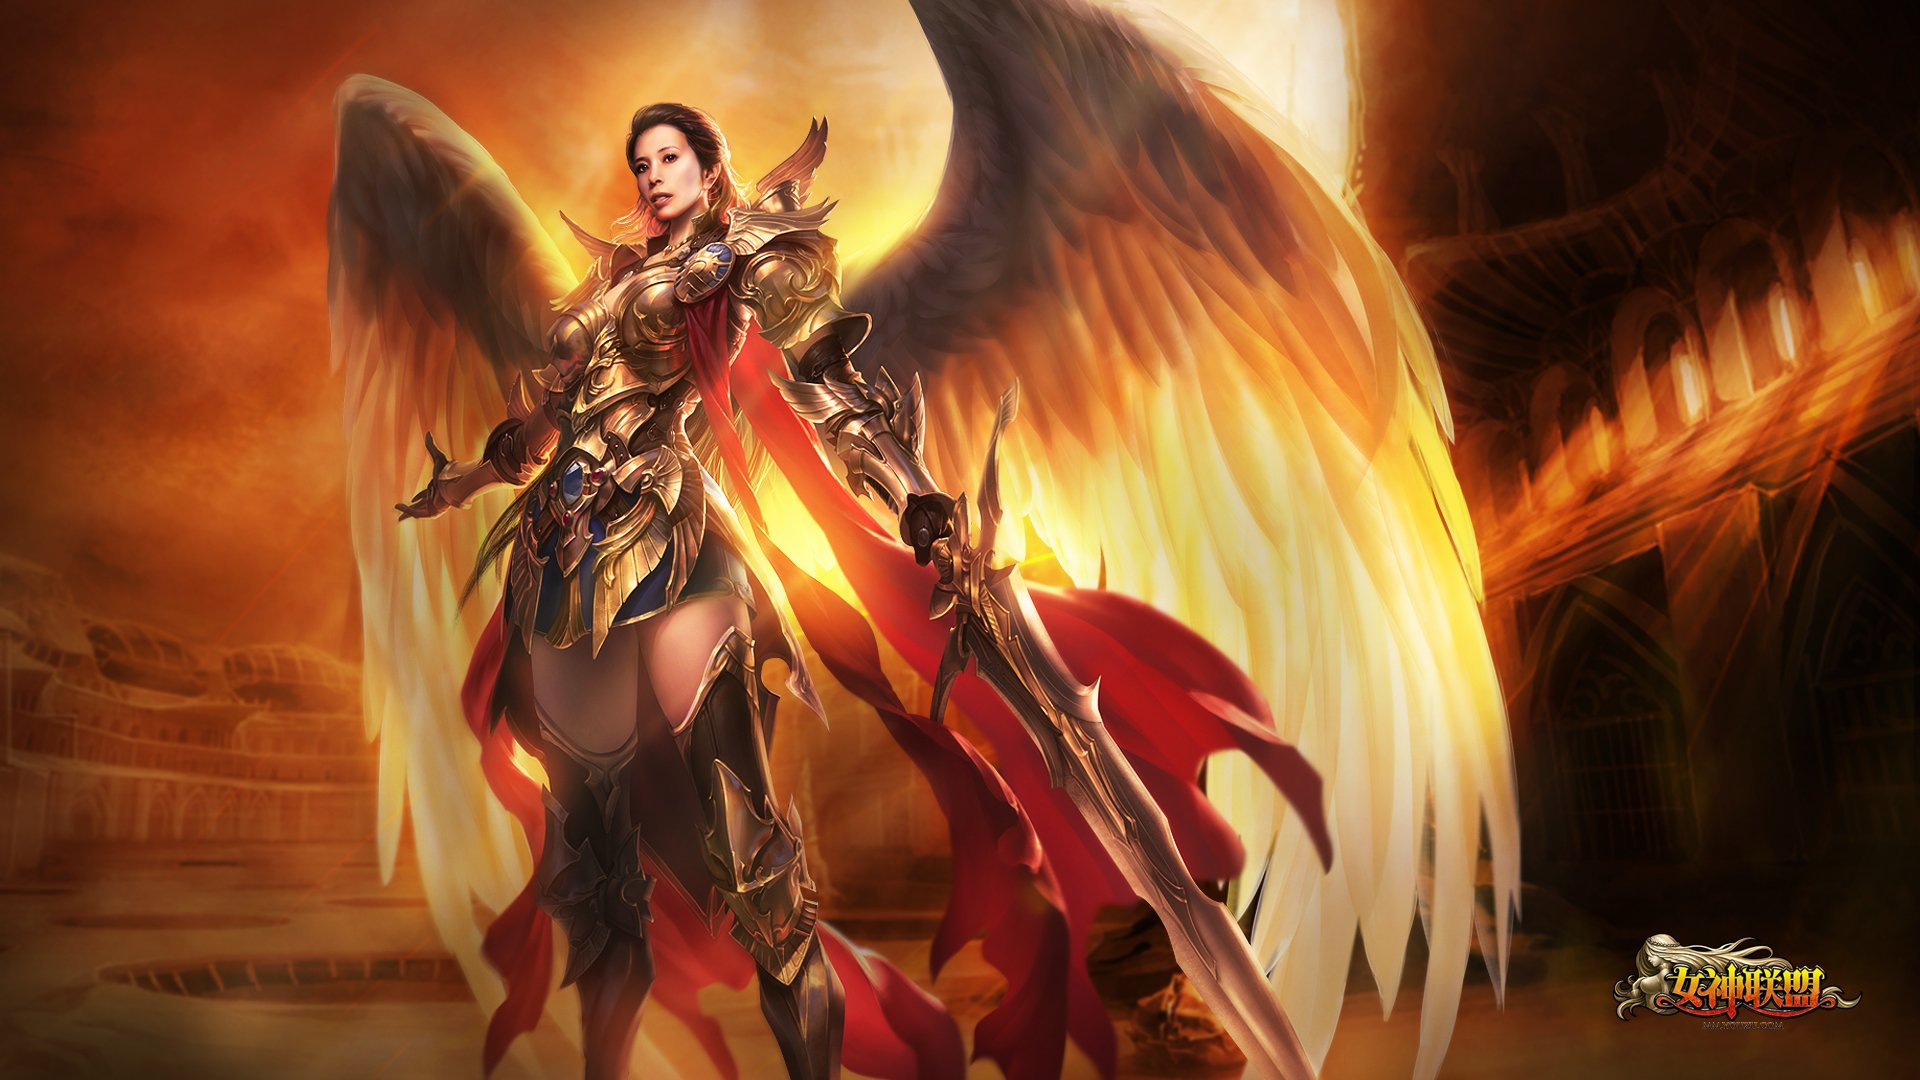 LEAGUE Of ANGELS loa fantasy mmo rpg online 1loa fighting action angel 1920x1080